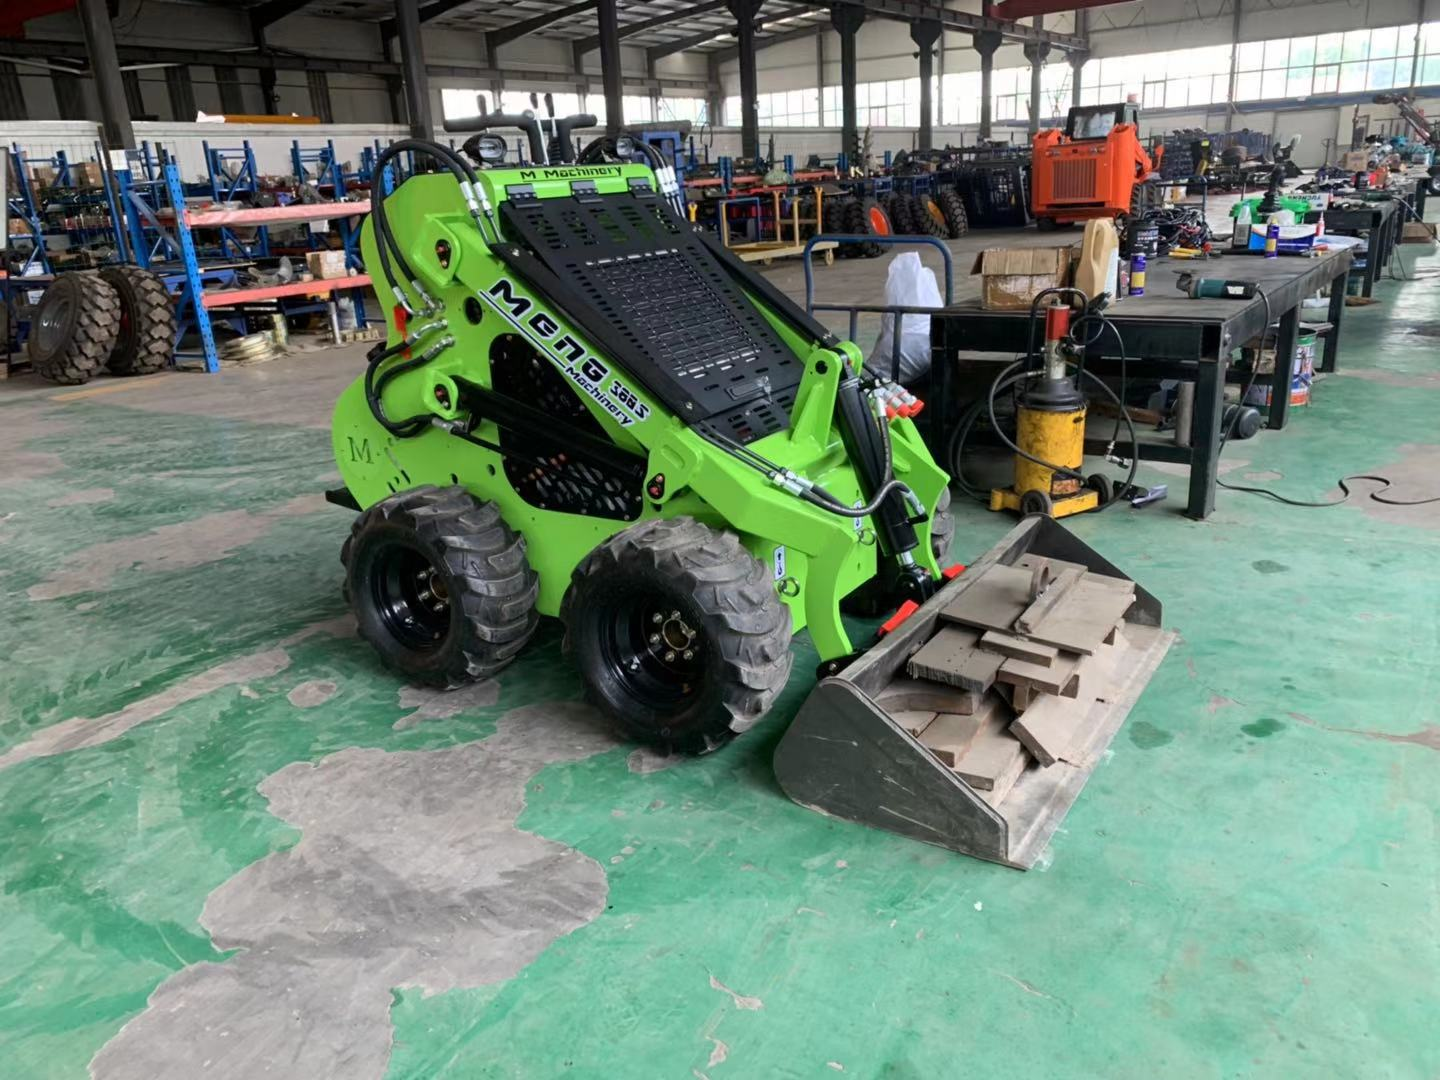 Small Compact Structure Mini Skid Steer Loader For